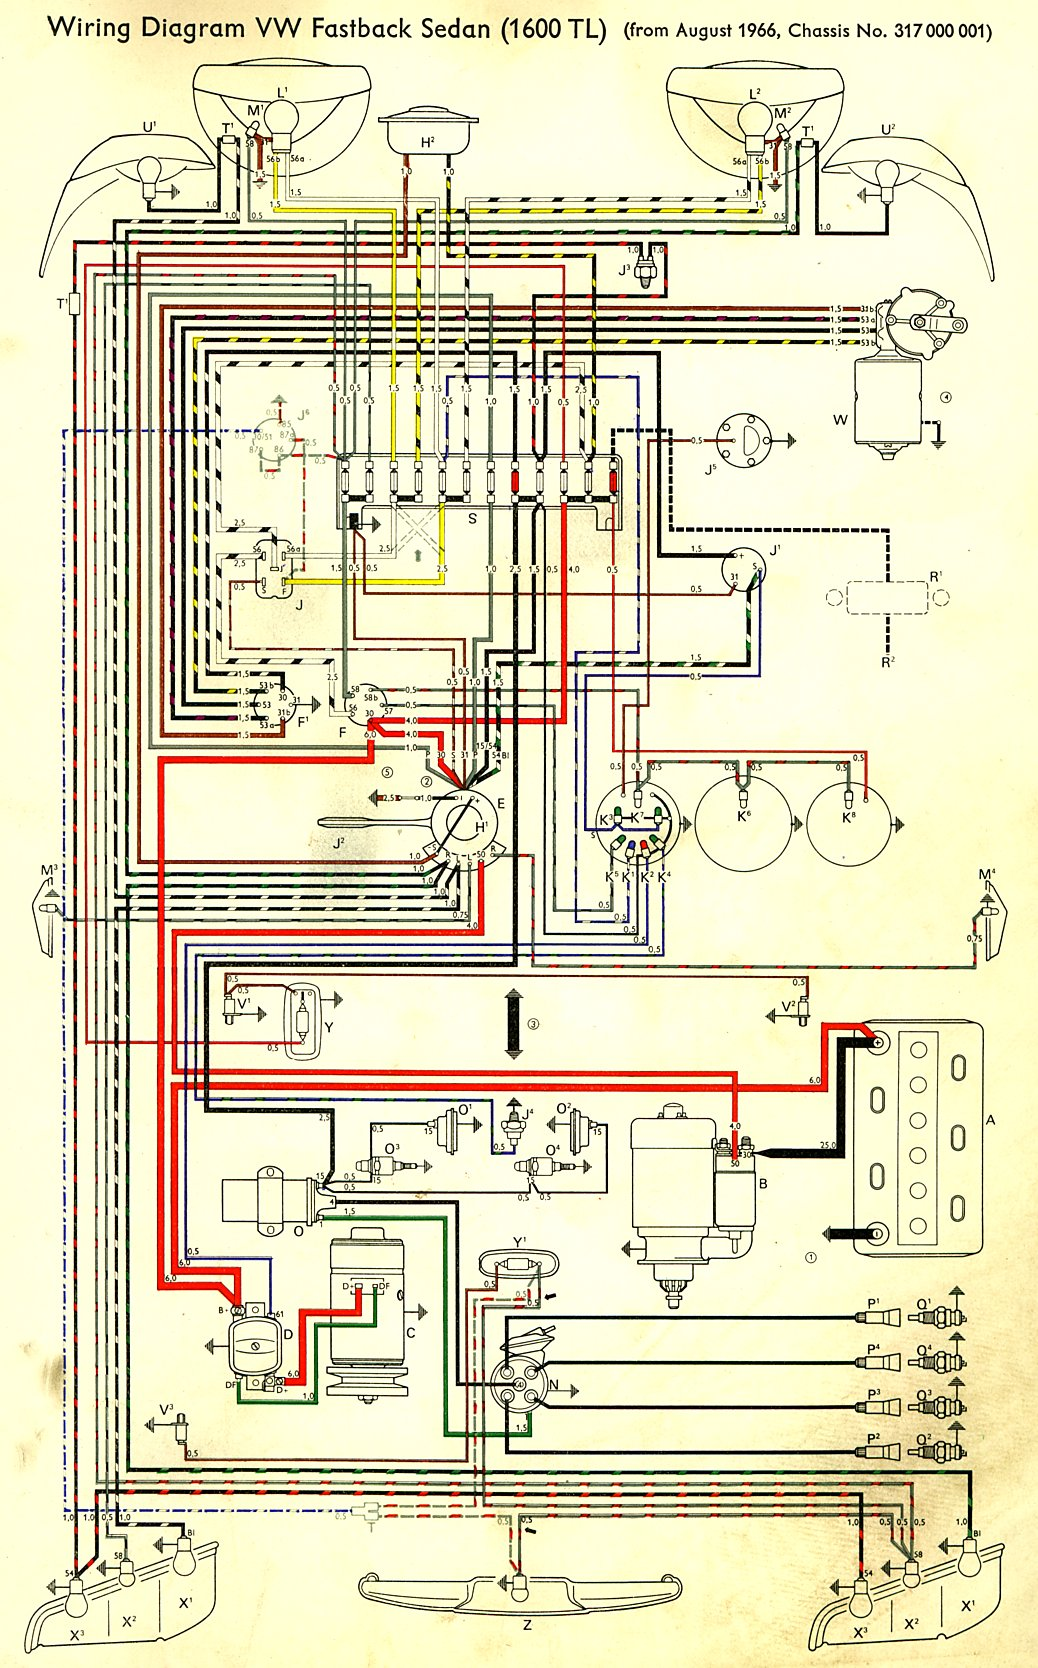 thesamba.com :: type 3 wiring diagrams vw wiring diagrams free #5